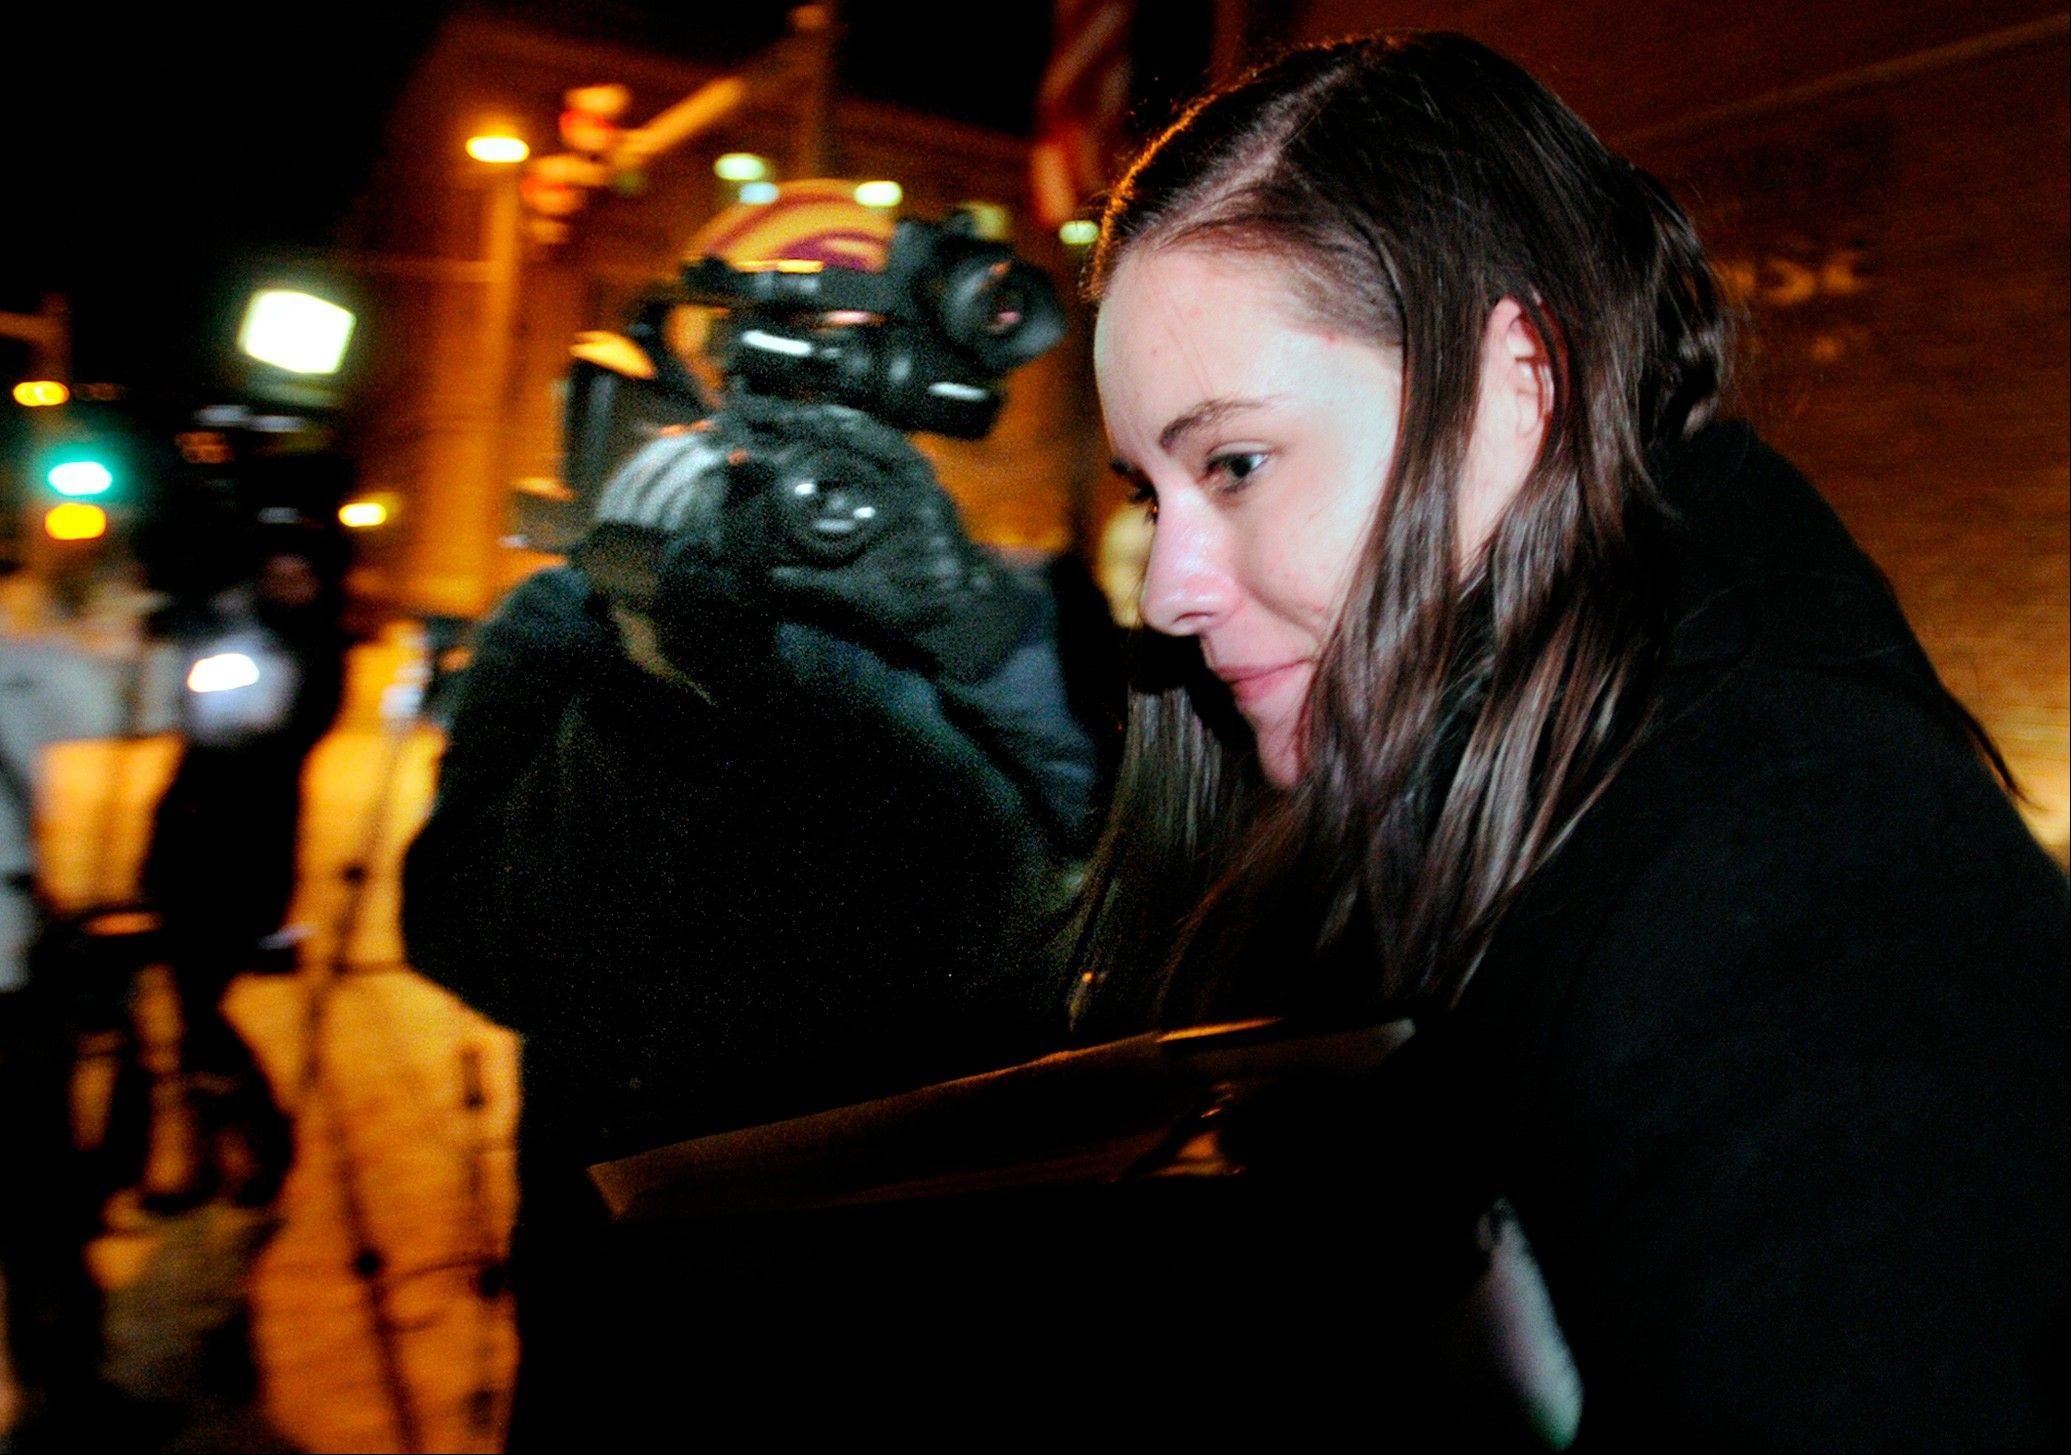 Jordan Graham leaves the Federal Courthouse in Missoula, Mont., Monday, Dec. 9, 2013 after the first day of her murder trial. In a surprising end to her murder trial, Graham, 22, accepted a last-minute deal with prosecutors to plead guilty to second-degree murder in the death of Cody Johnson, her husband of eight days, and admitted to pushing him off a cliff in Glacier National Park on July 7.